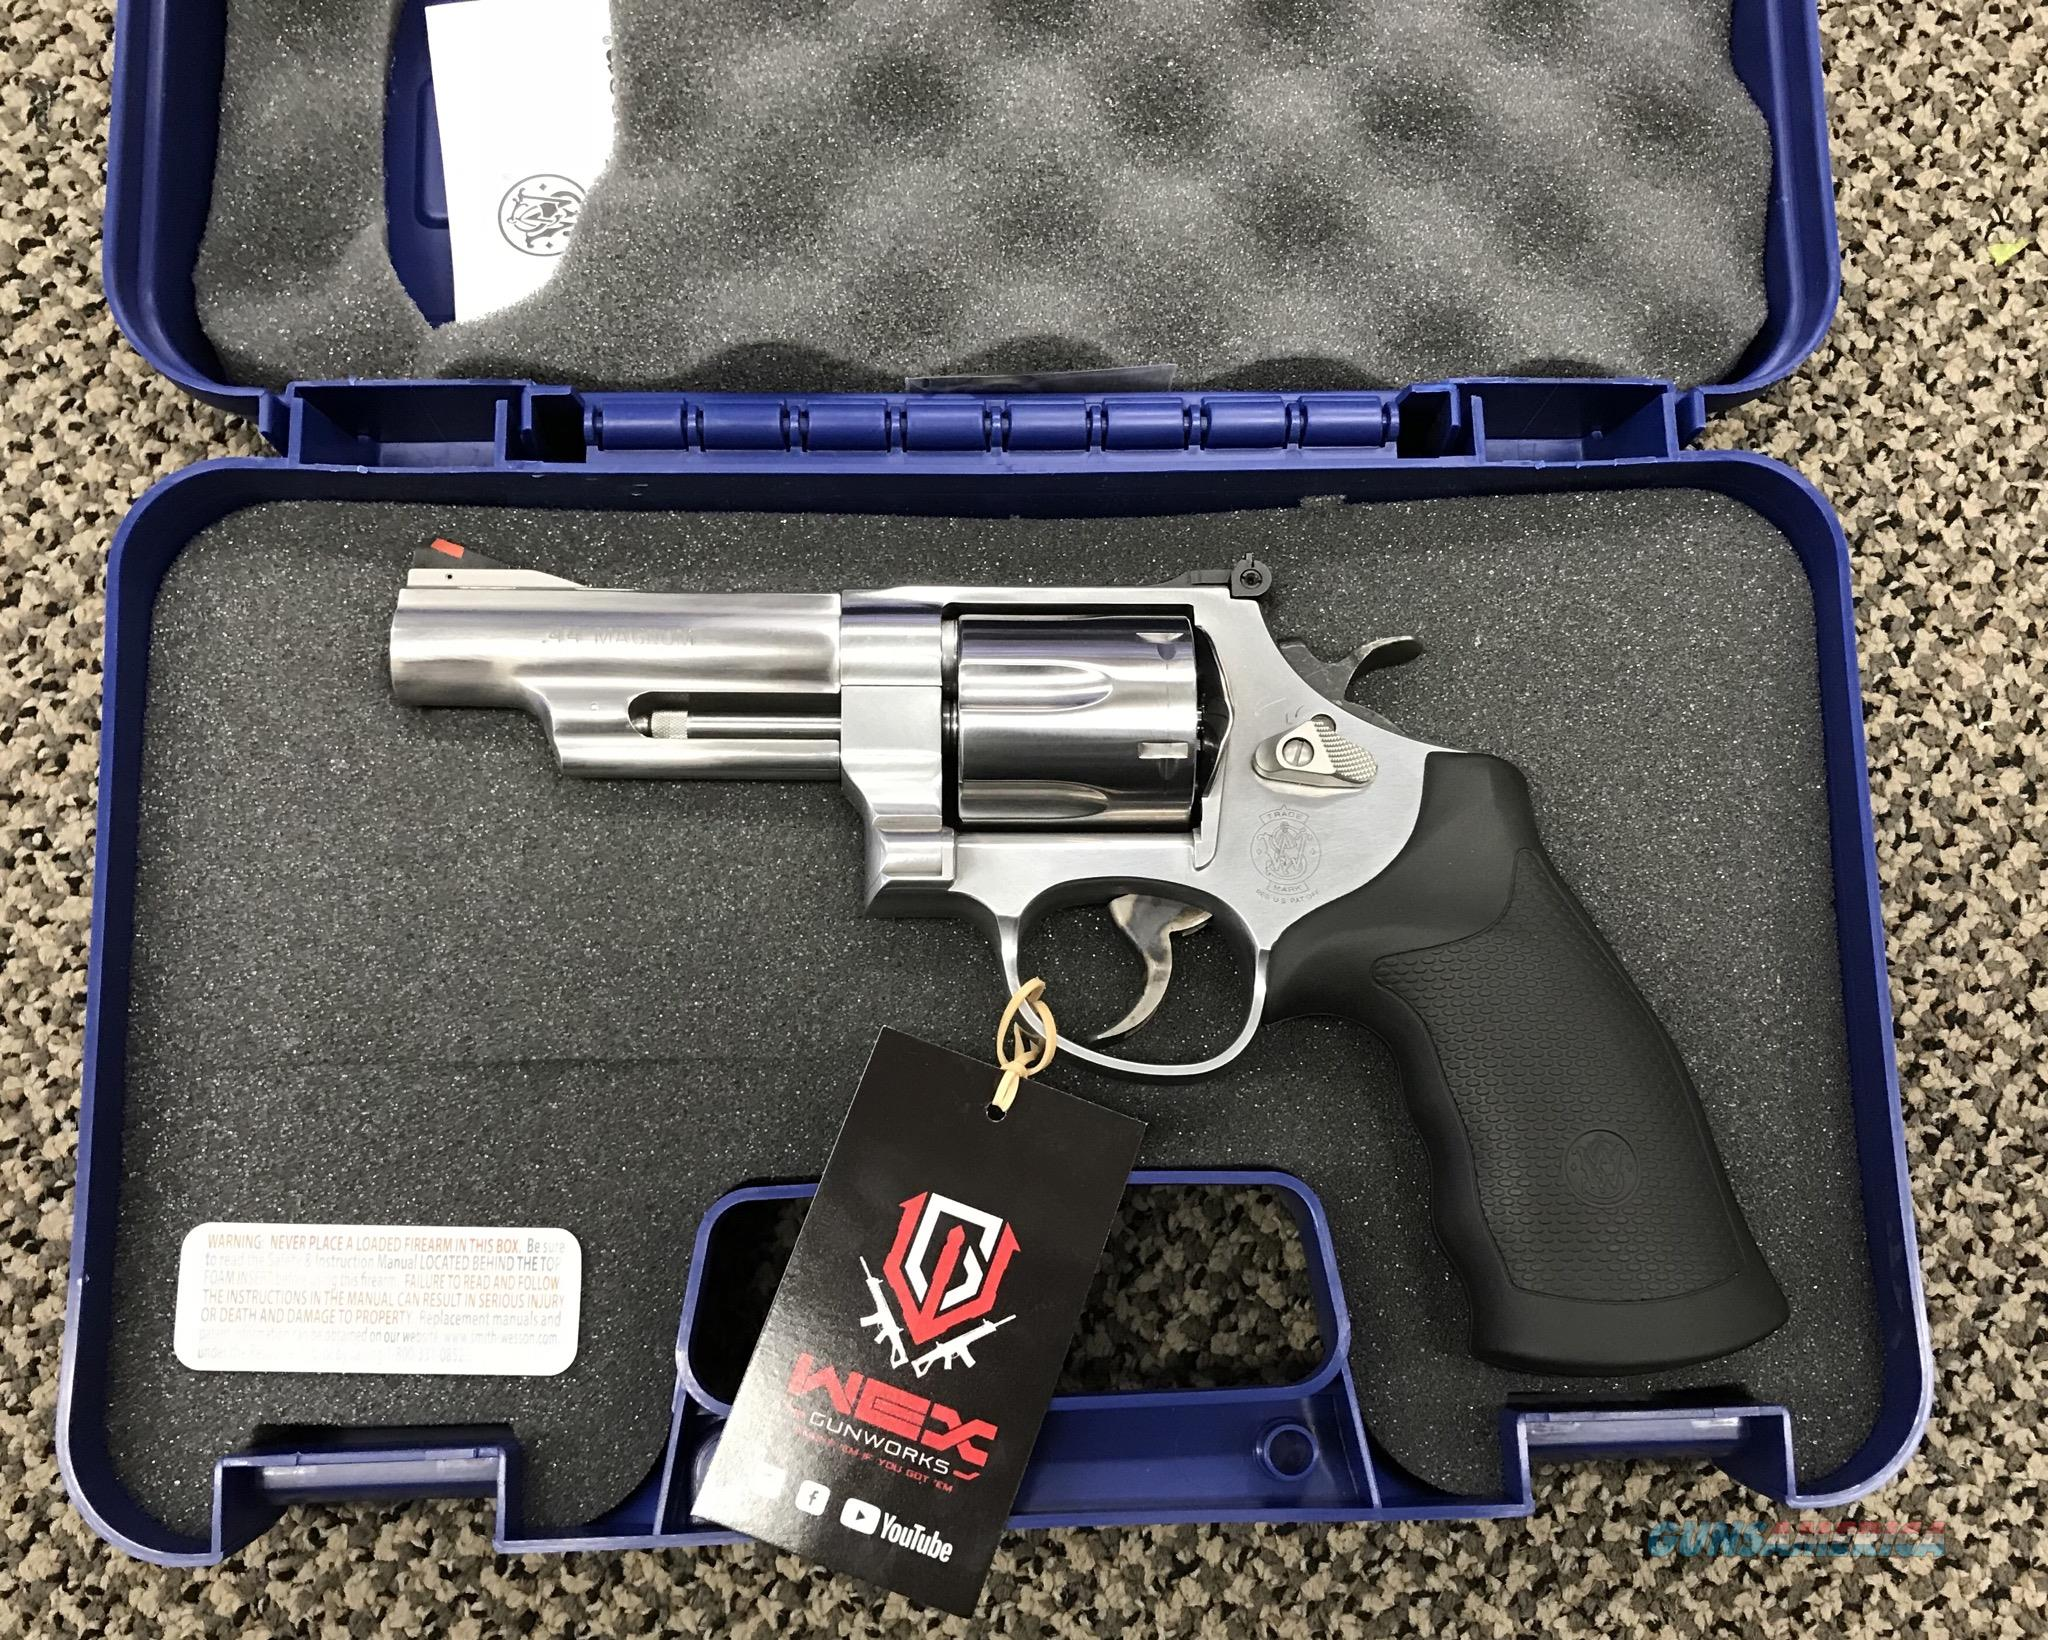 S&W MODEL 629-6 44 MAGNUM 4 INCH BBL MAGNAPORT PISTOL PORTING NEW IN BOX  Guns > Pistols > Smith & Wesson Revolvers > Full Frame Revolver